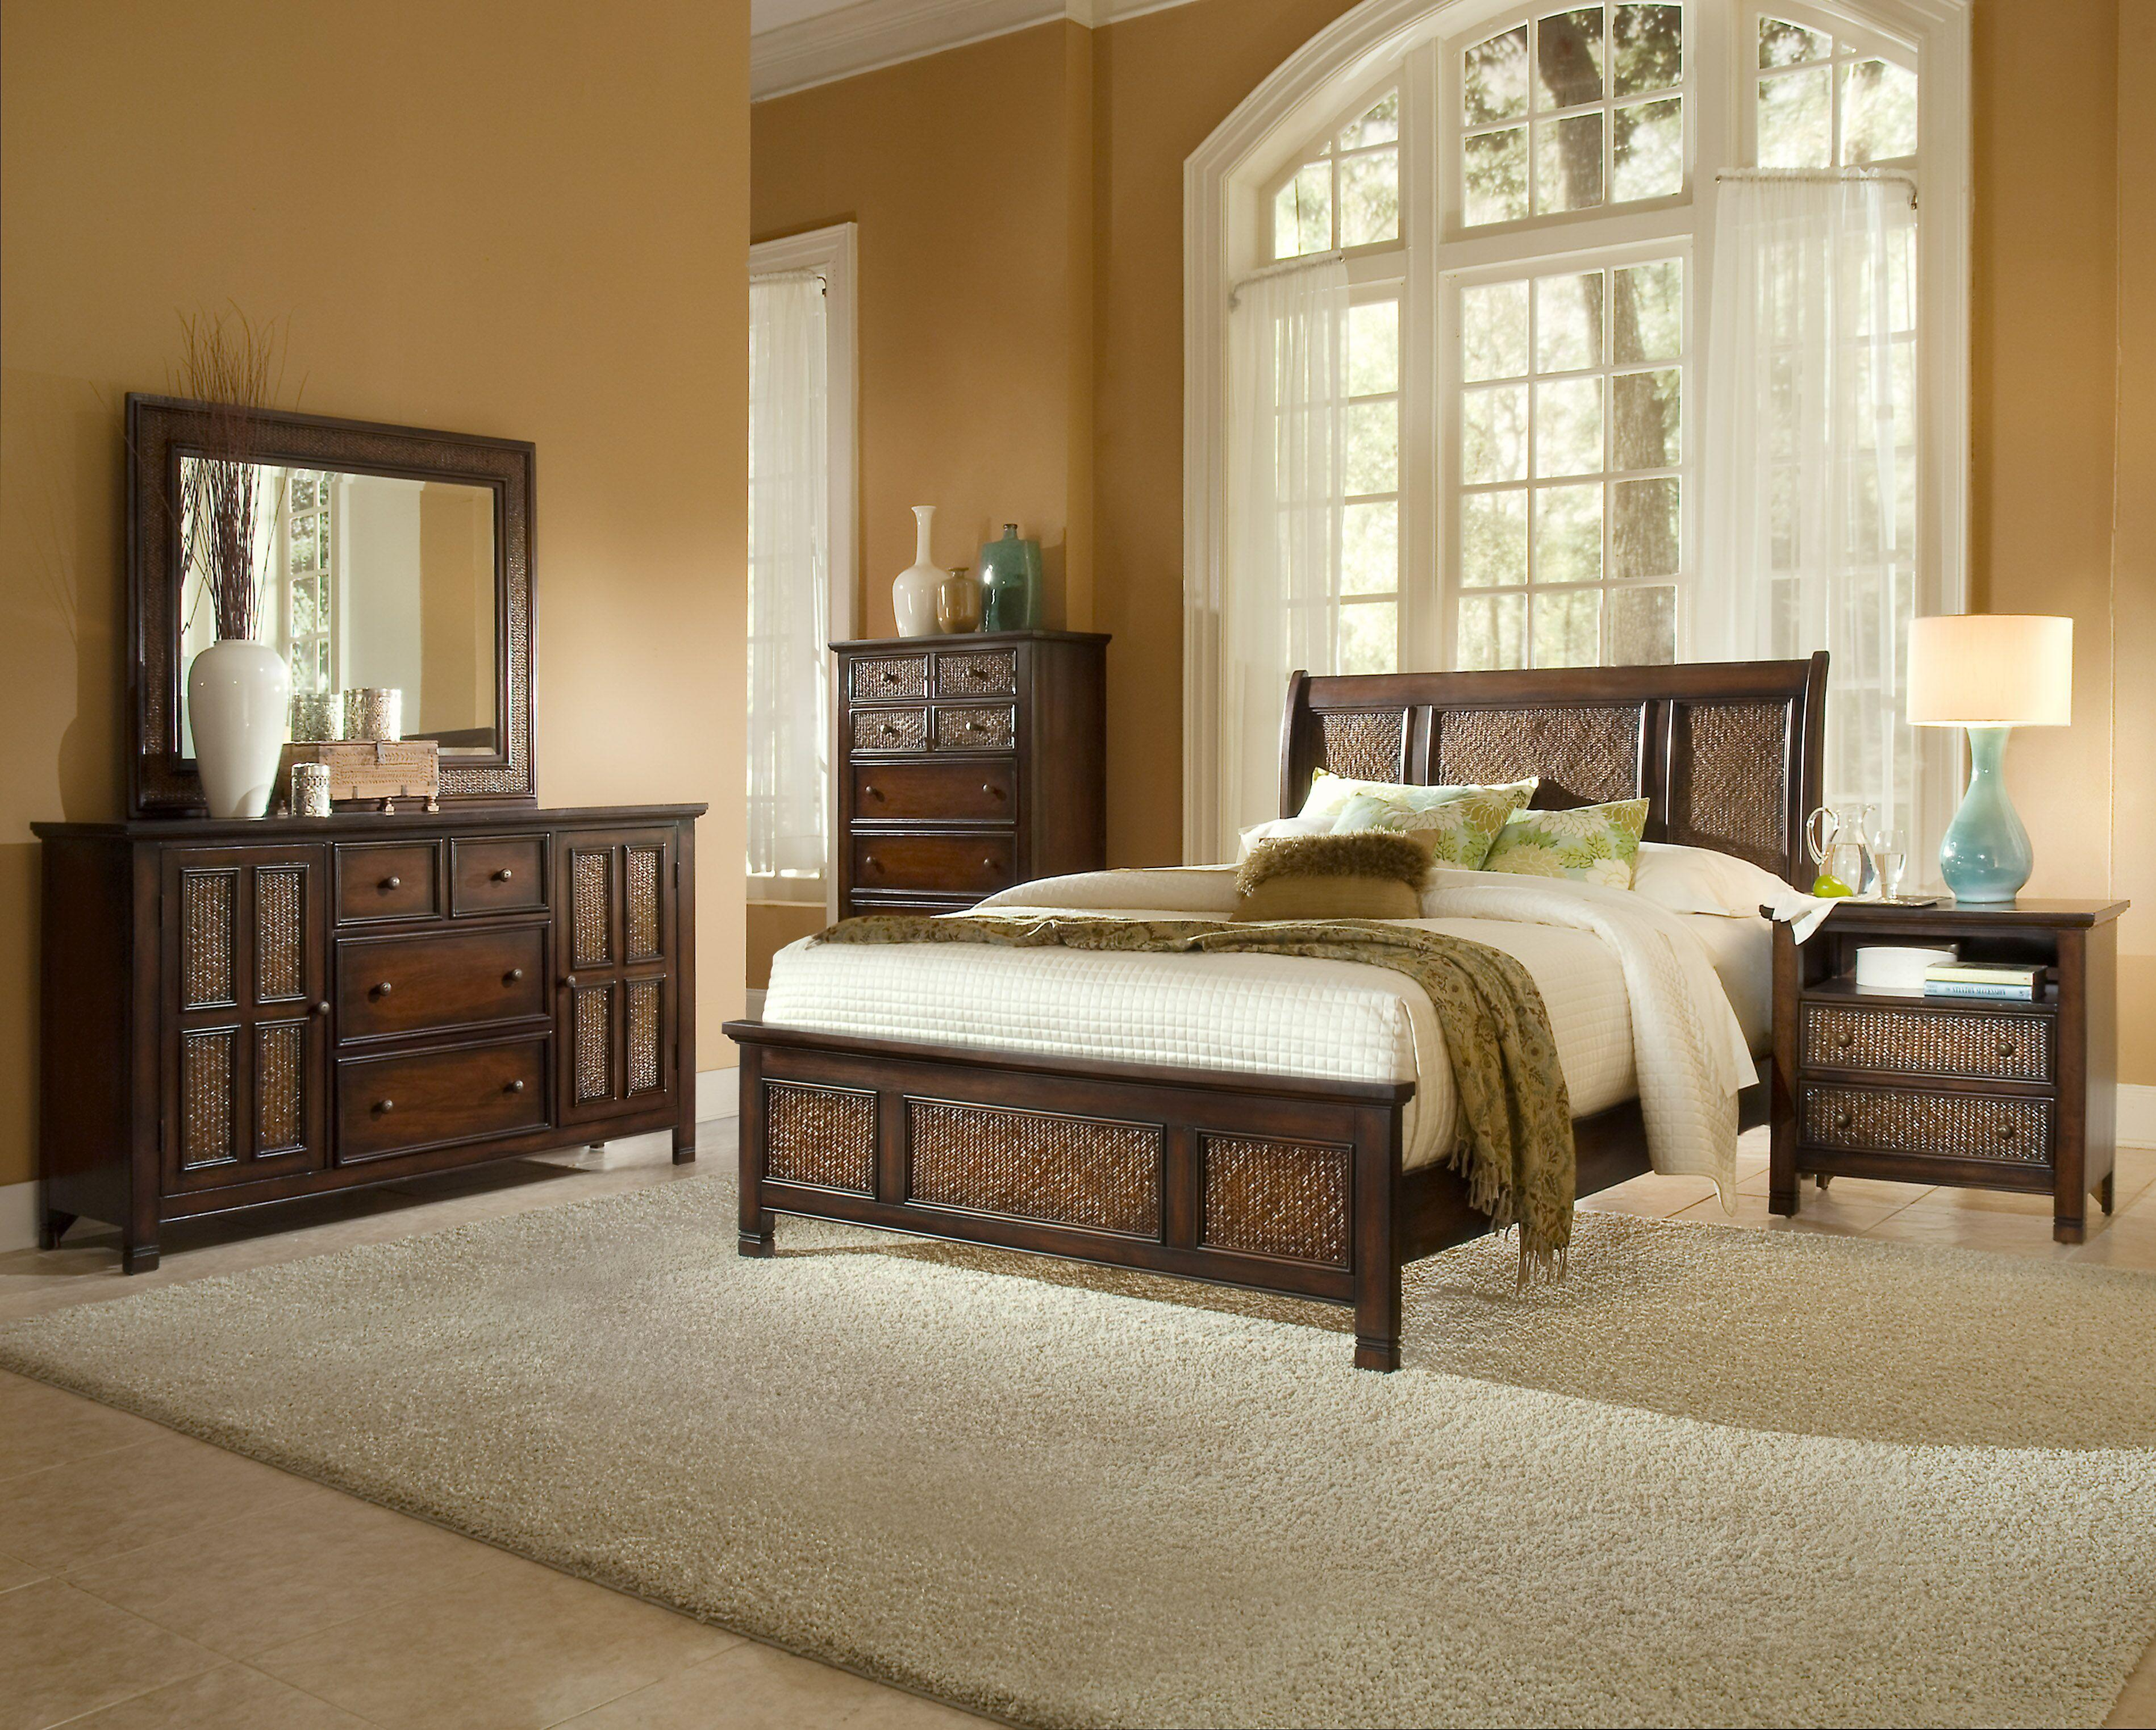 Progressive Furniture Kingston Isle King Bedroom Group - Item Number: P195 K Bedroom Group 1